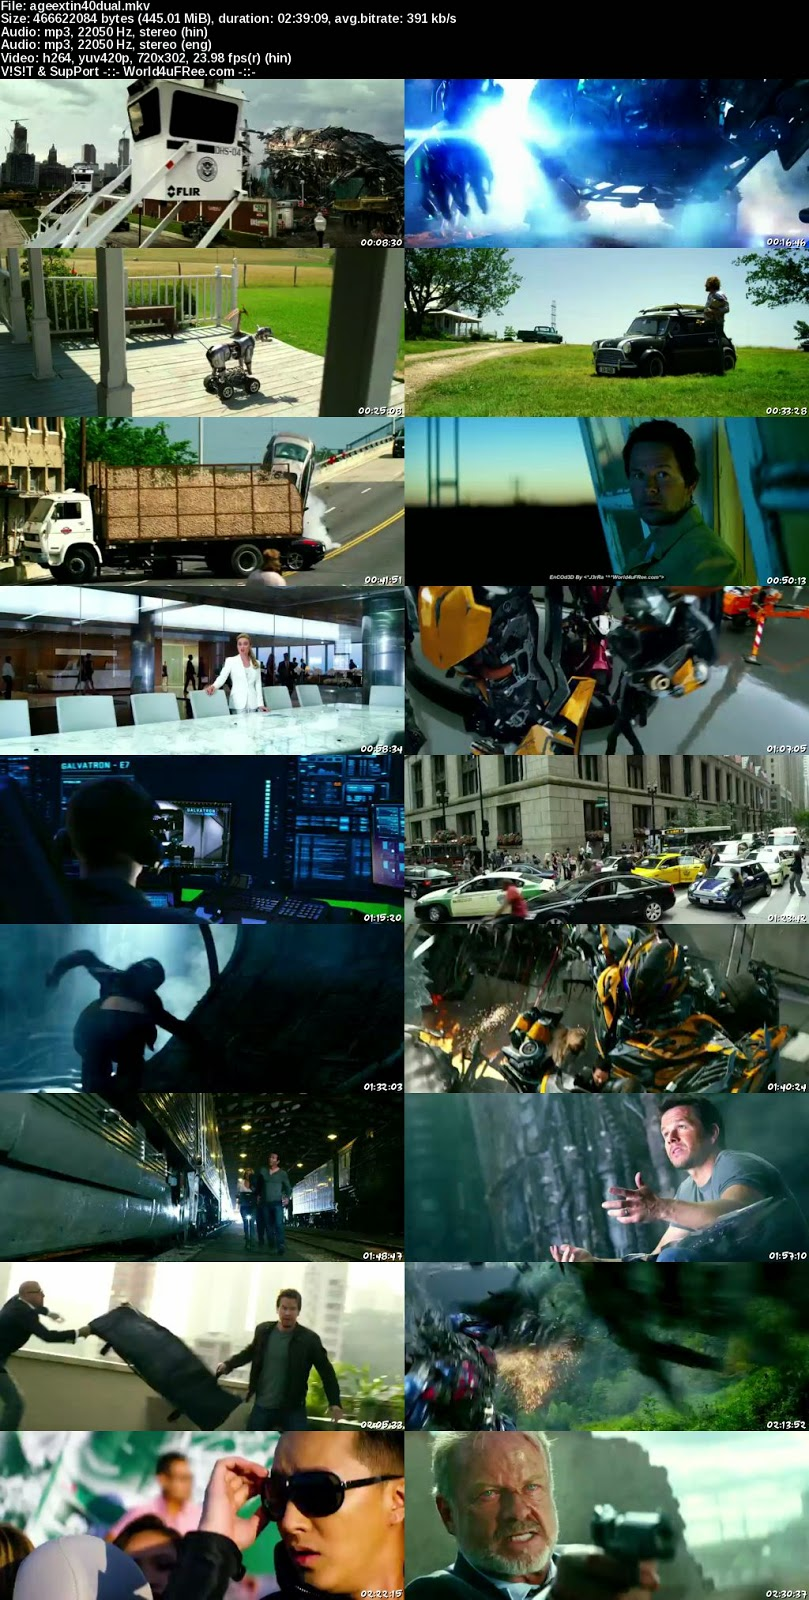 Watch Online Transformers 4 2014 In Hindi Dubbed 300mb